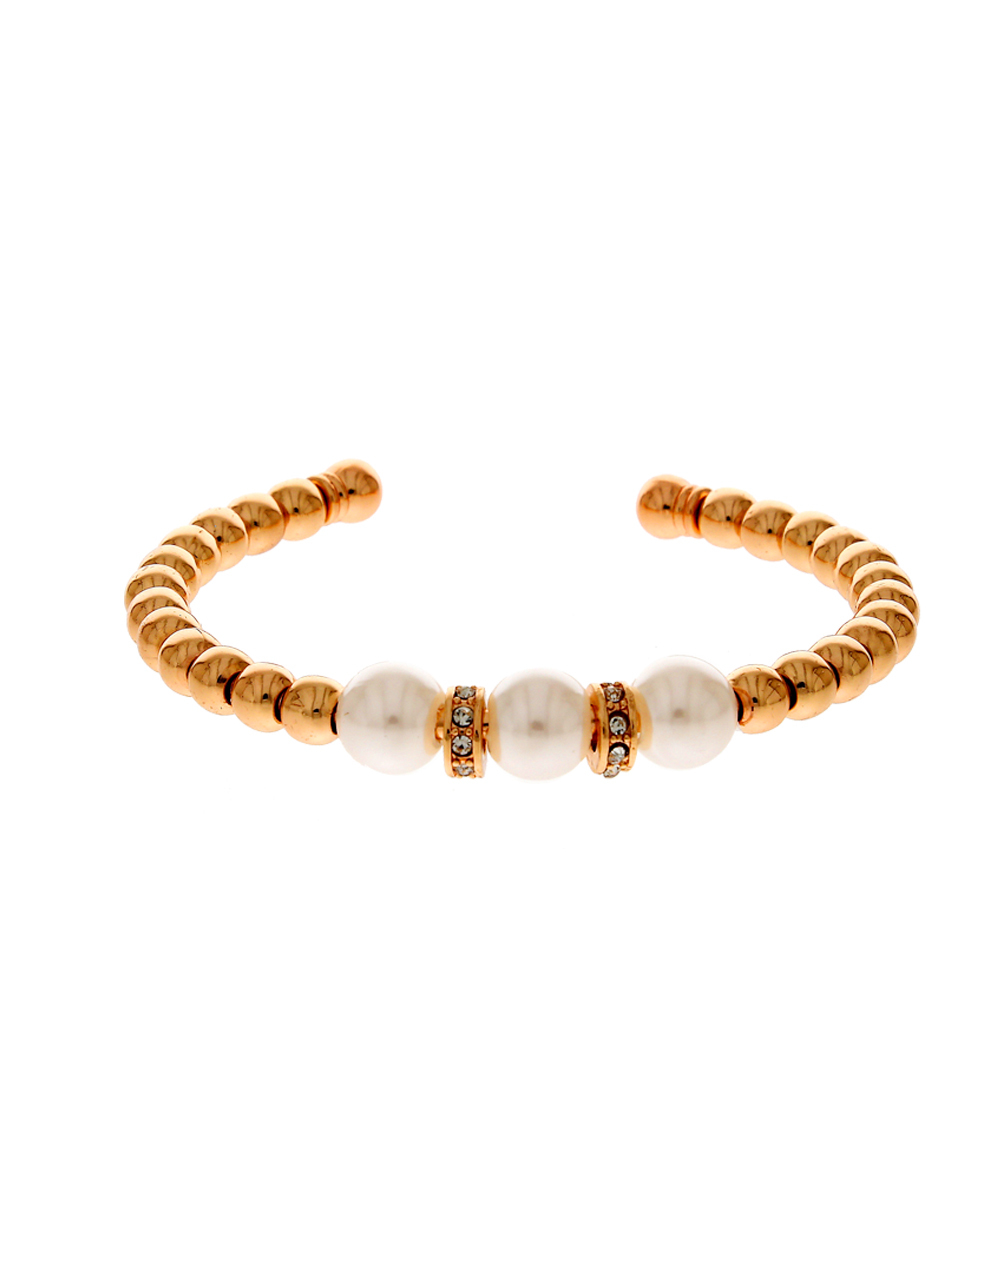 Anuradha Art Golden Colour Styled with Woven Pearl Beads Beautiful Hand Bracelet//Kada for Women//Girls